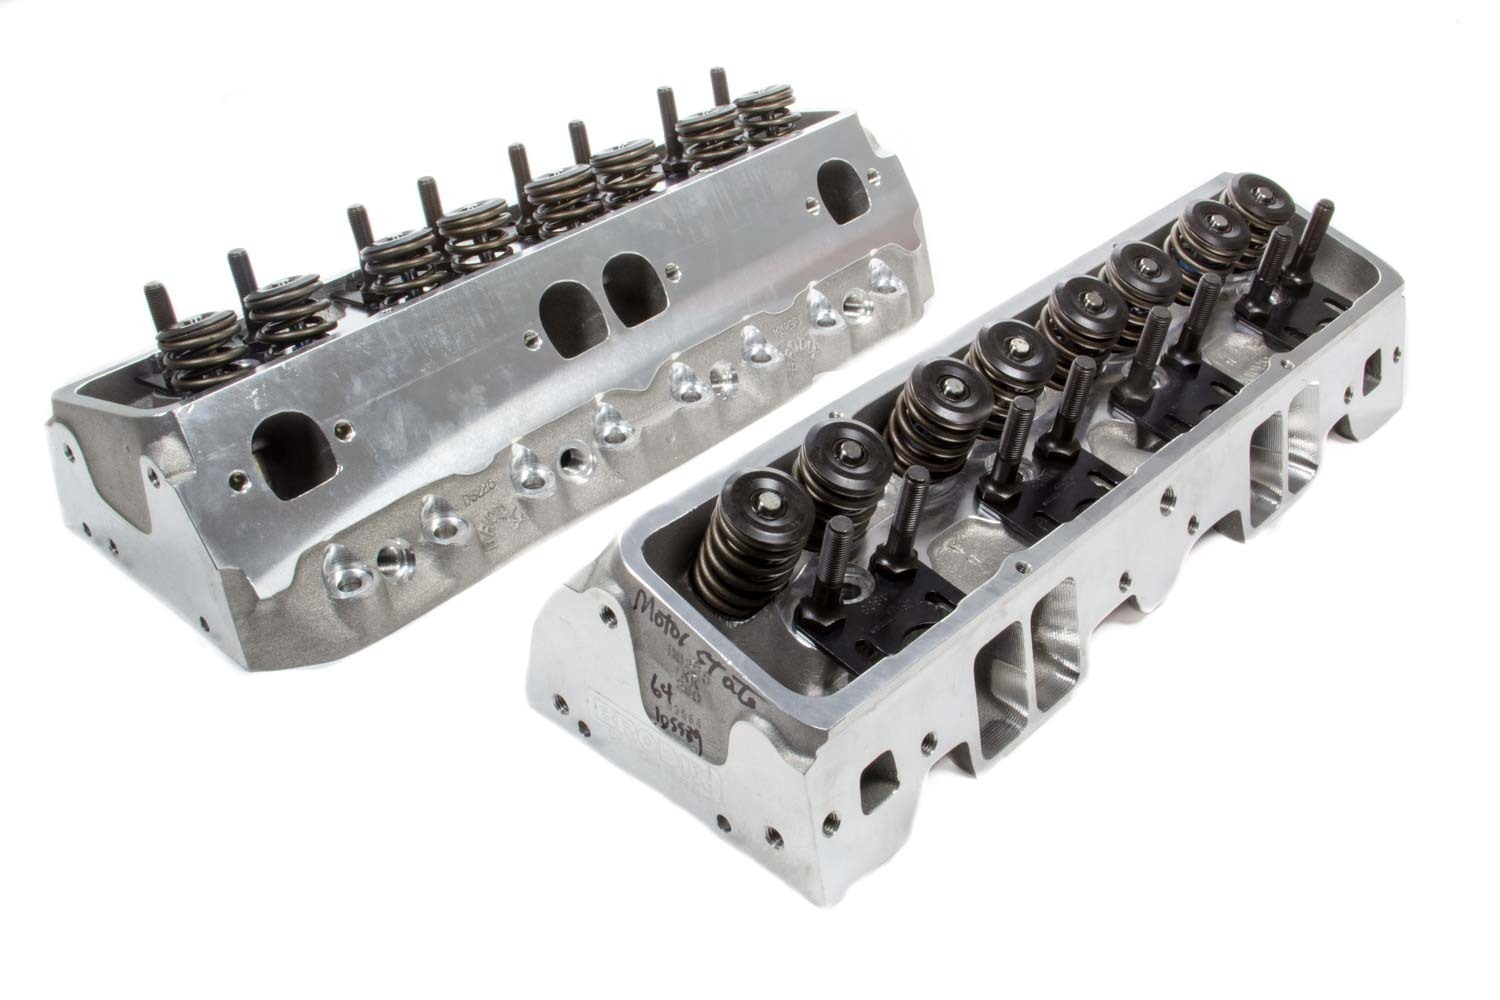 Brodix 1321000 Cylinder Head, DS 225, Assembled, 2.080 / 1.600 in Valves, 225 cc Intake, 68 cc Chamber, 1.550 in Springs, Aluminum, Small Block Chevy, Pair